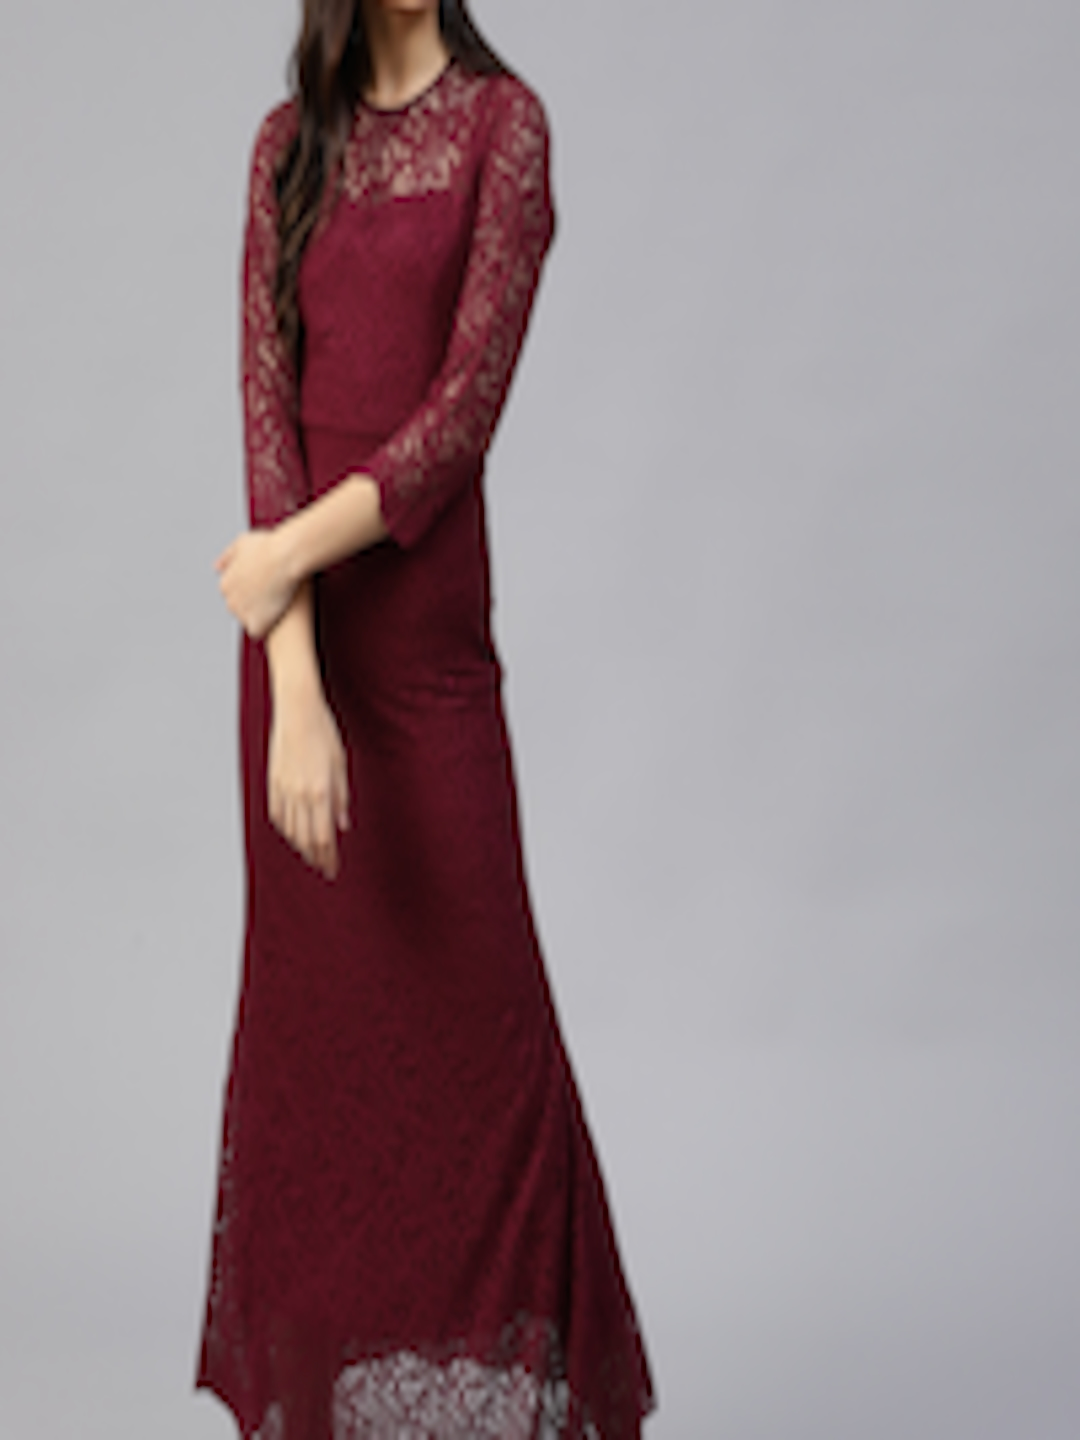 cheapest sale highly praised official store Buy Athena Women Burgundy Lace Maxi Dress - - Apparel for Women